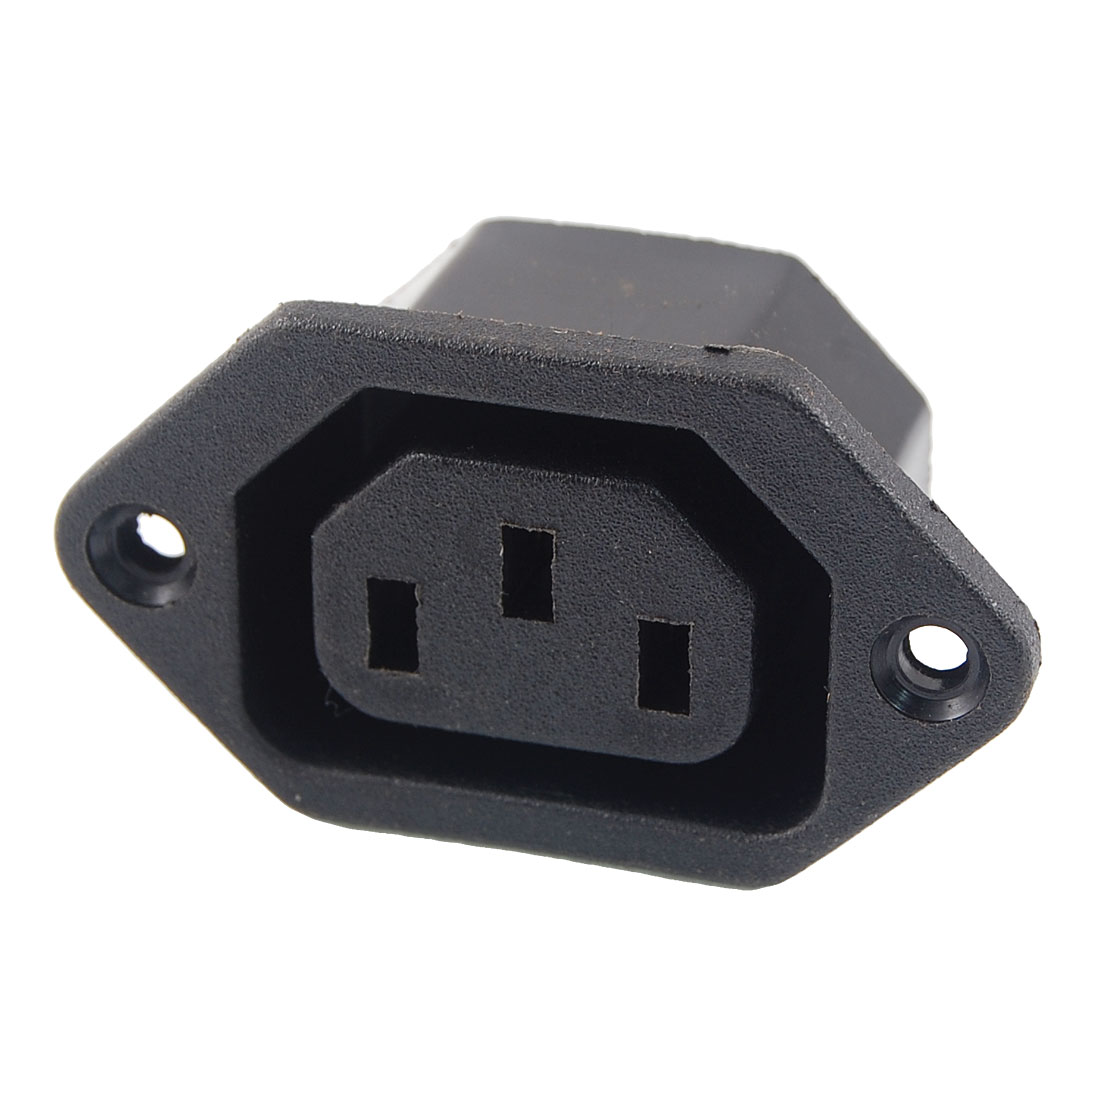 AC 250V 10A 3 Terminals C13 Outlet Power Socket Connector